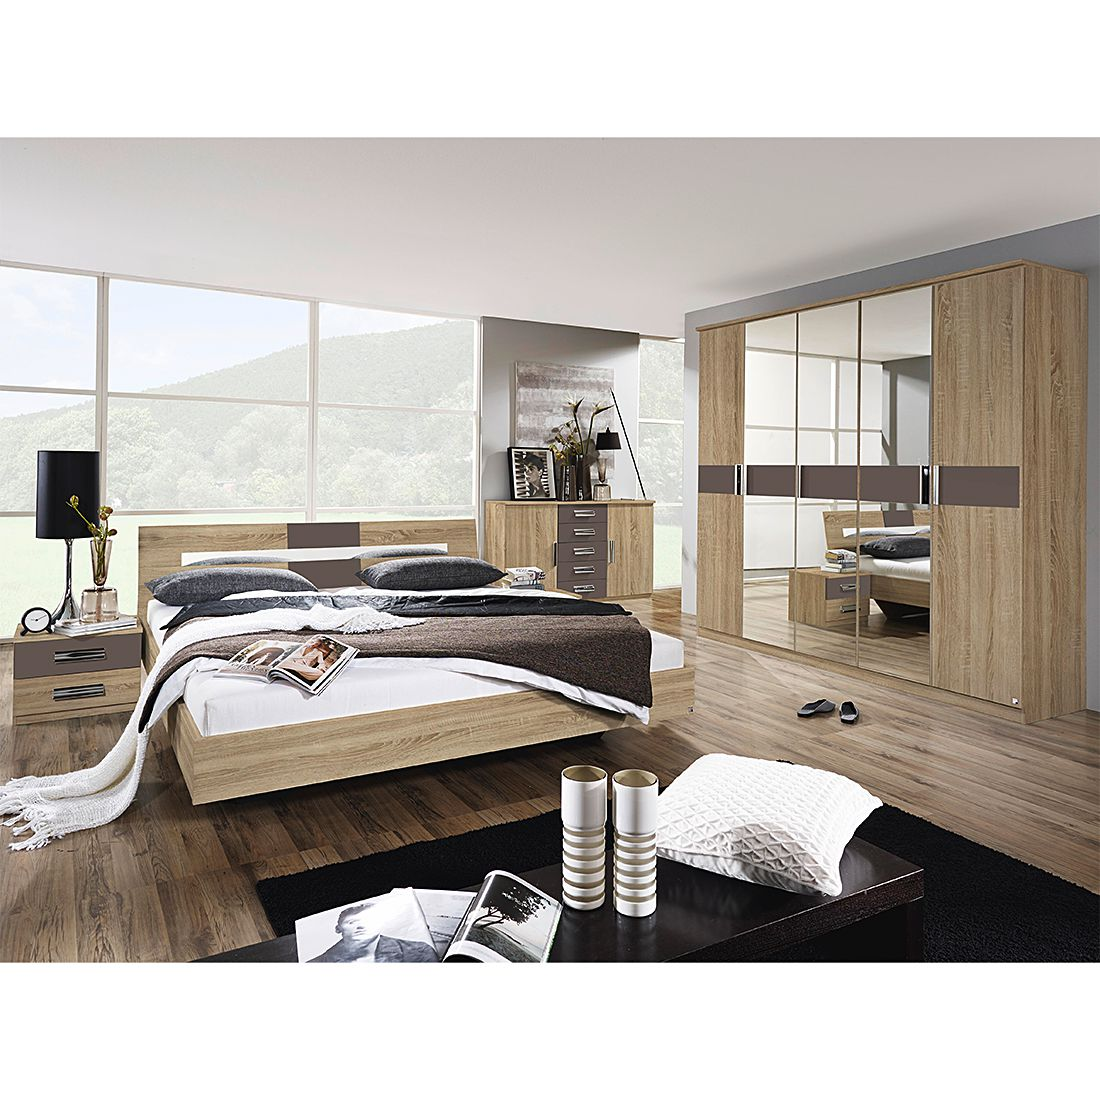 schlafzimmerset sonoma 4 teilig eiche sonoma lavagrau mit bett 160cm breit. Black Bedroom Furniture Sets. Home Design Ideas